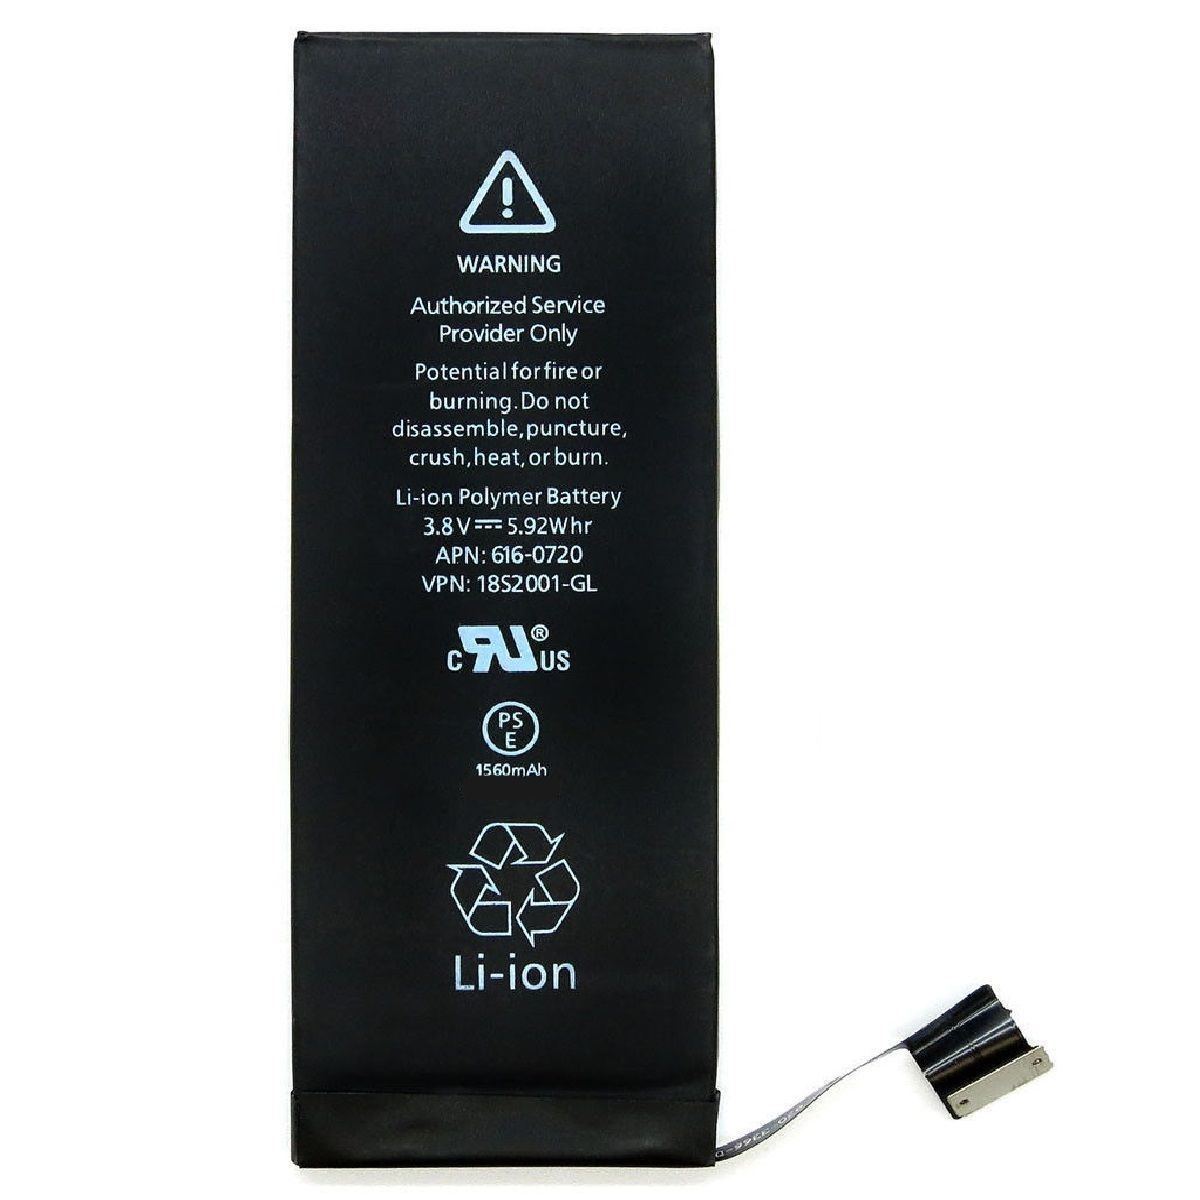 1560mAh Li-ion Internal Battery for iPhone 5s 5c